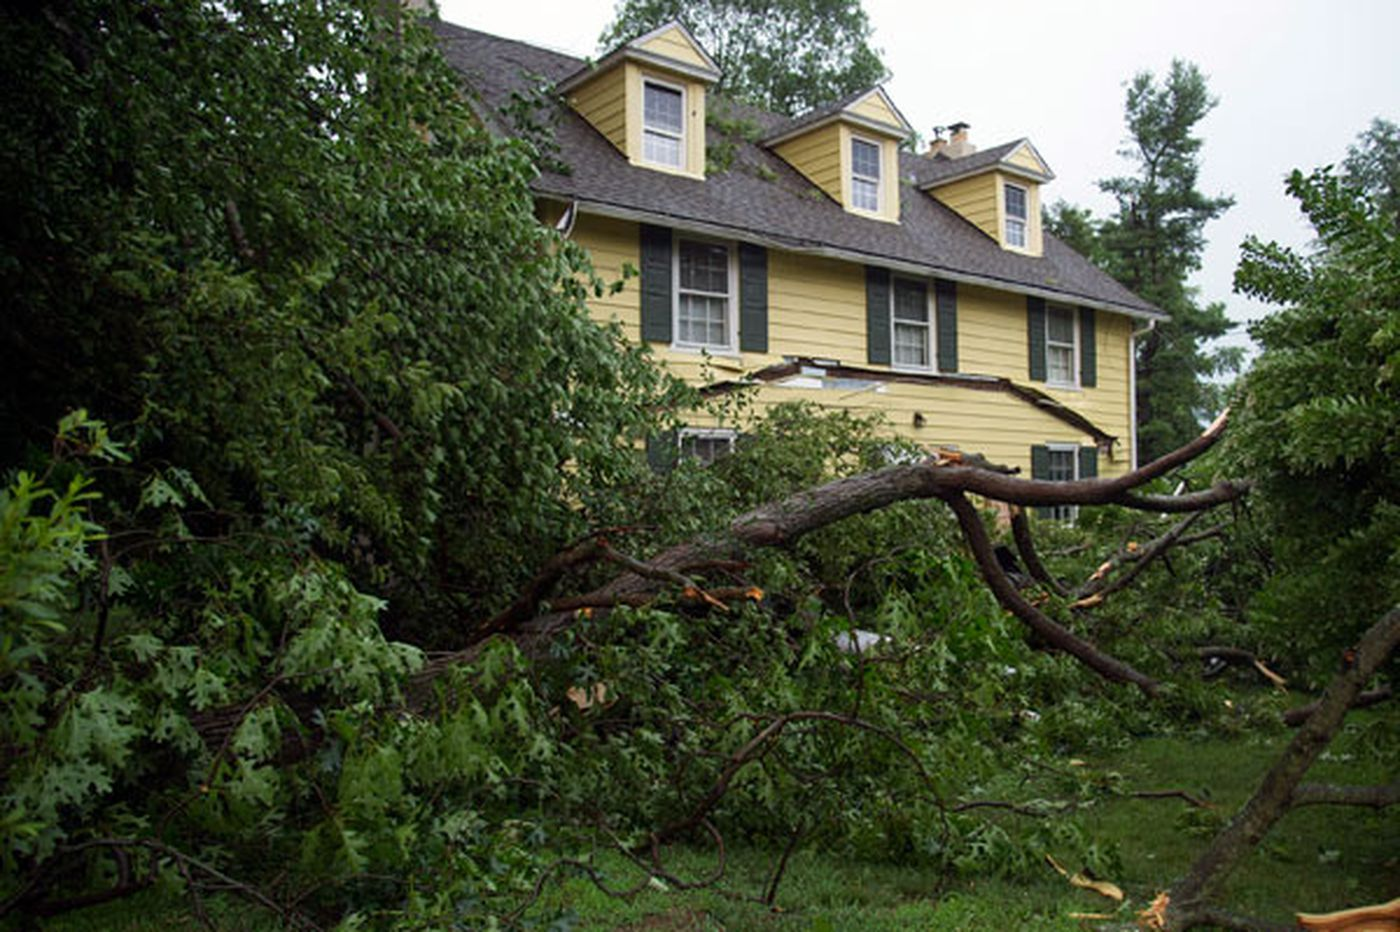 Tornado touches down in Pennsylvania, severe thunderstorm warning remains in NY